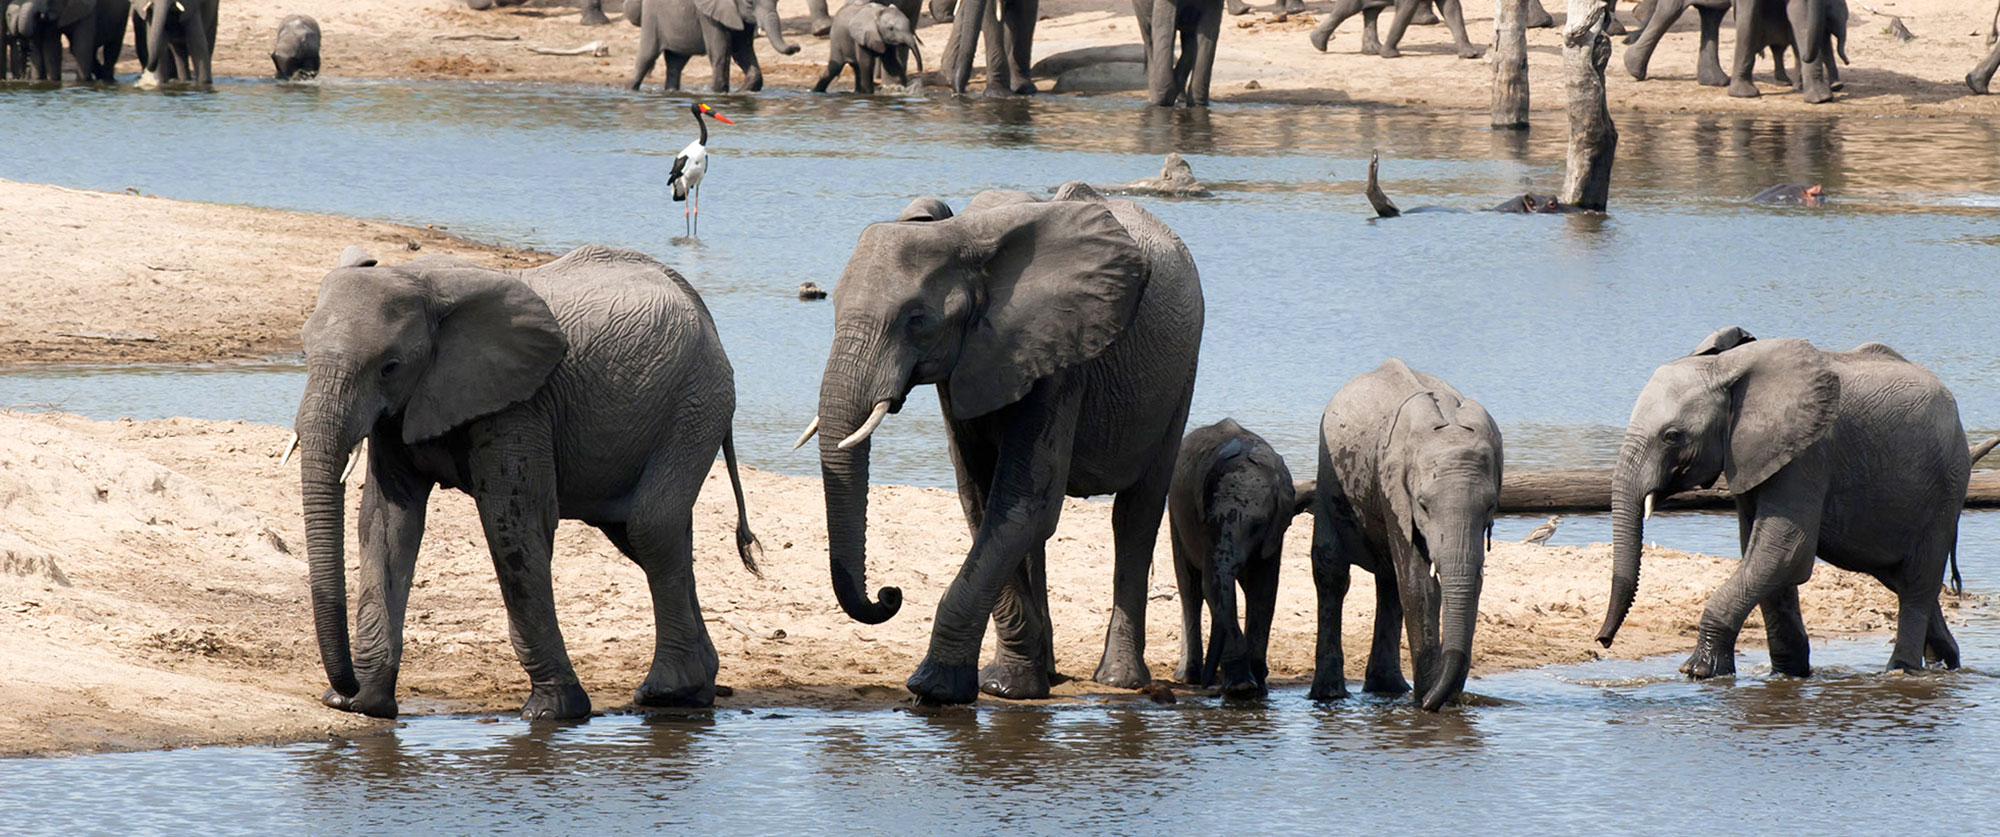 South Africa Safari and Wine Vacation - Elephants at Ulusaba Private Game Reserve